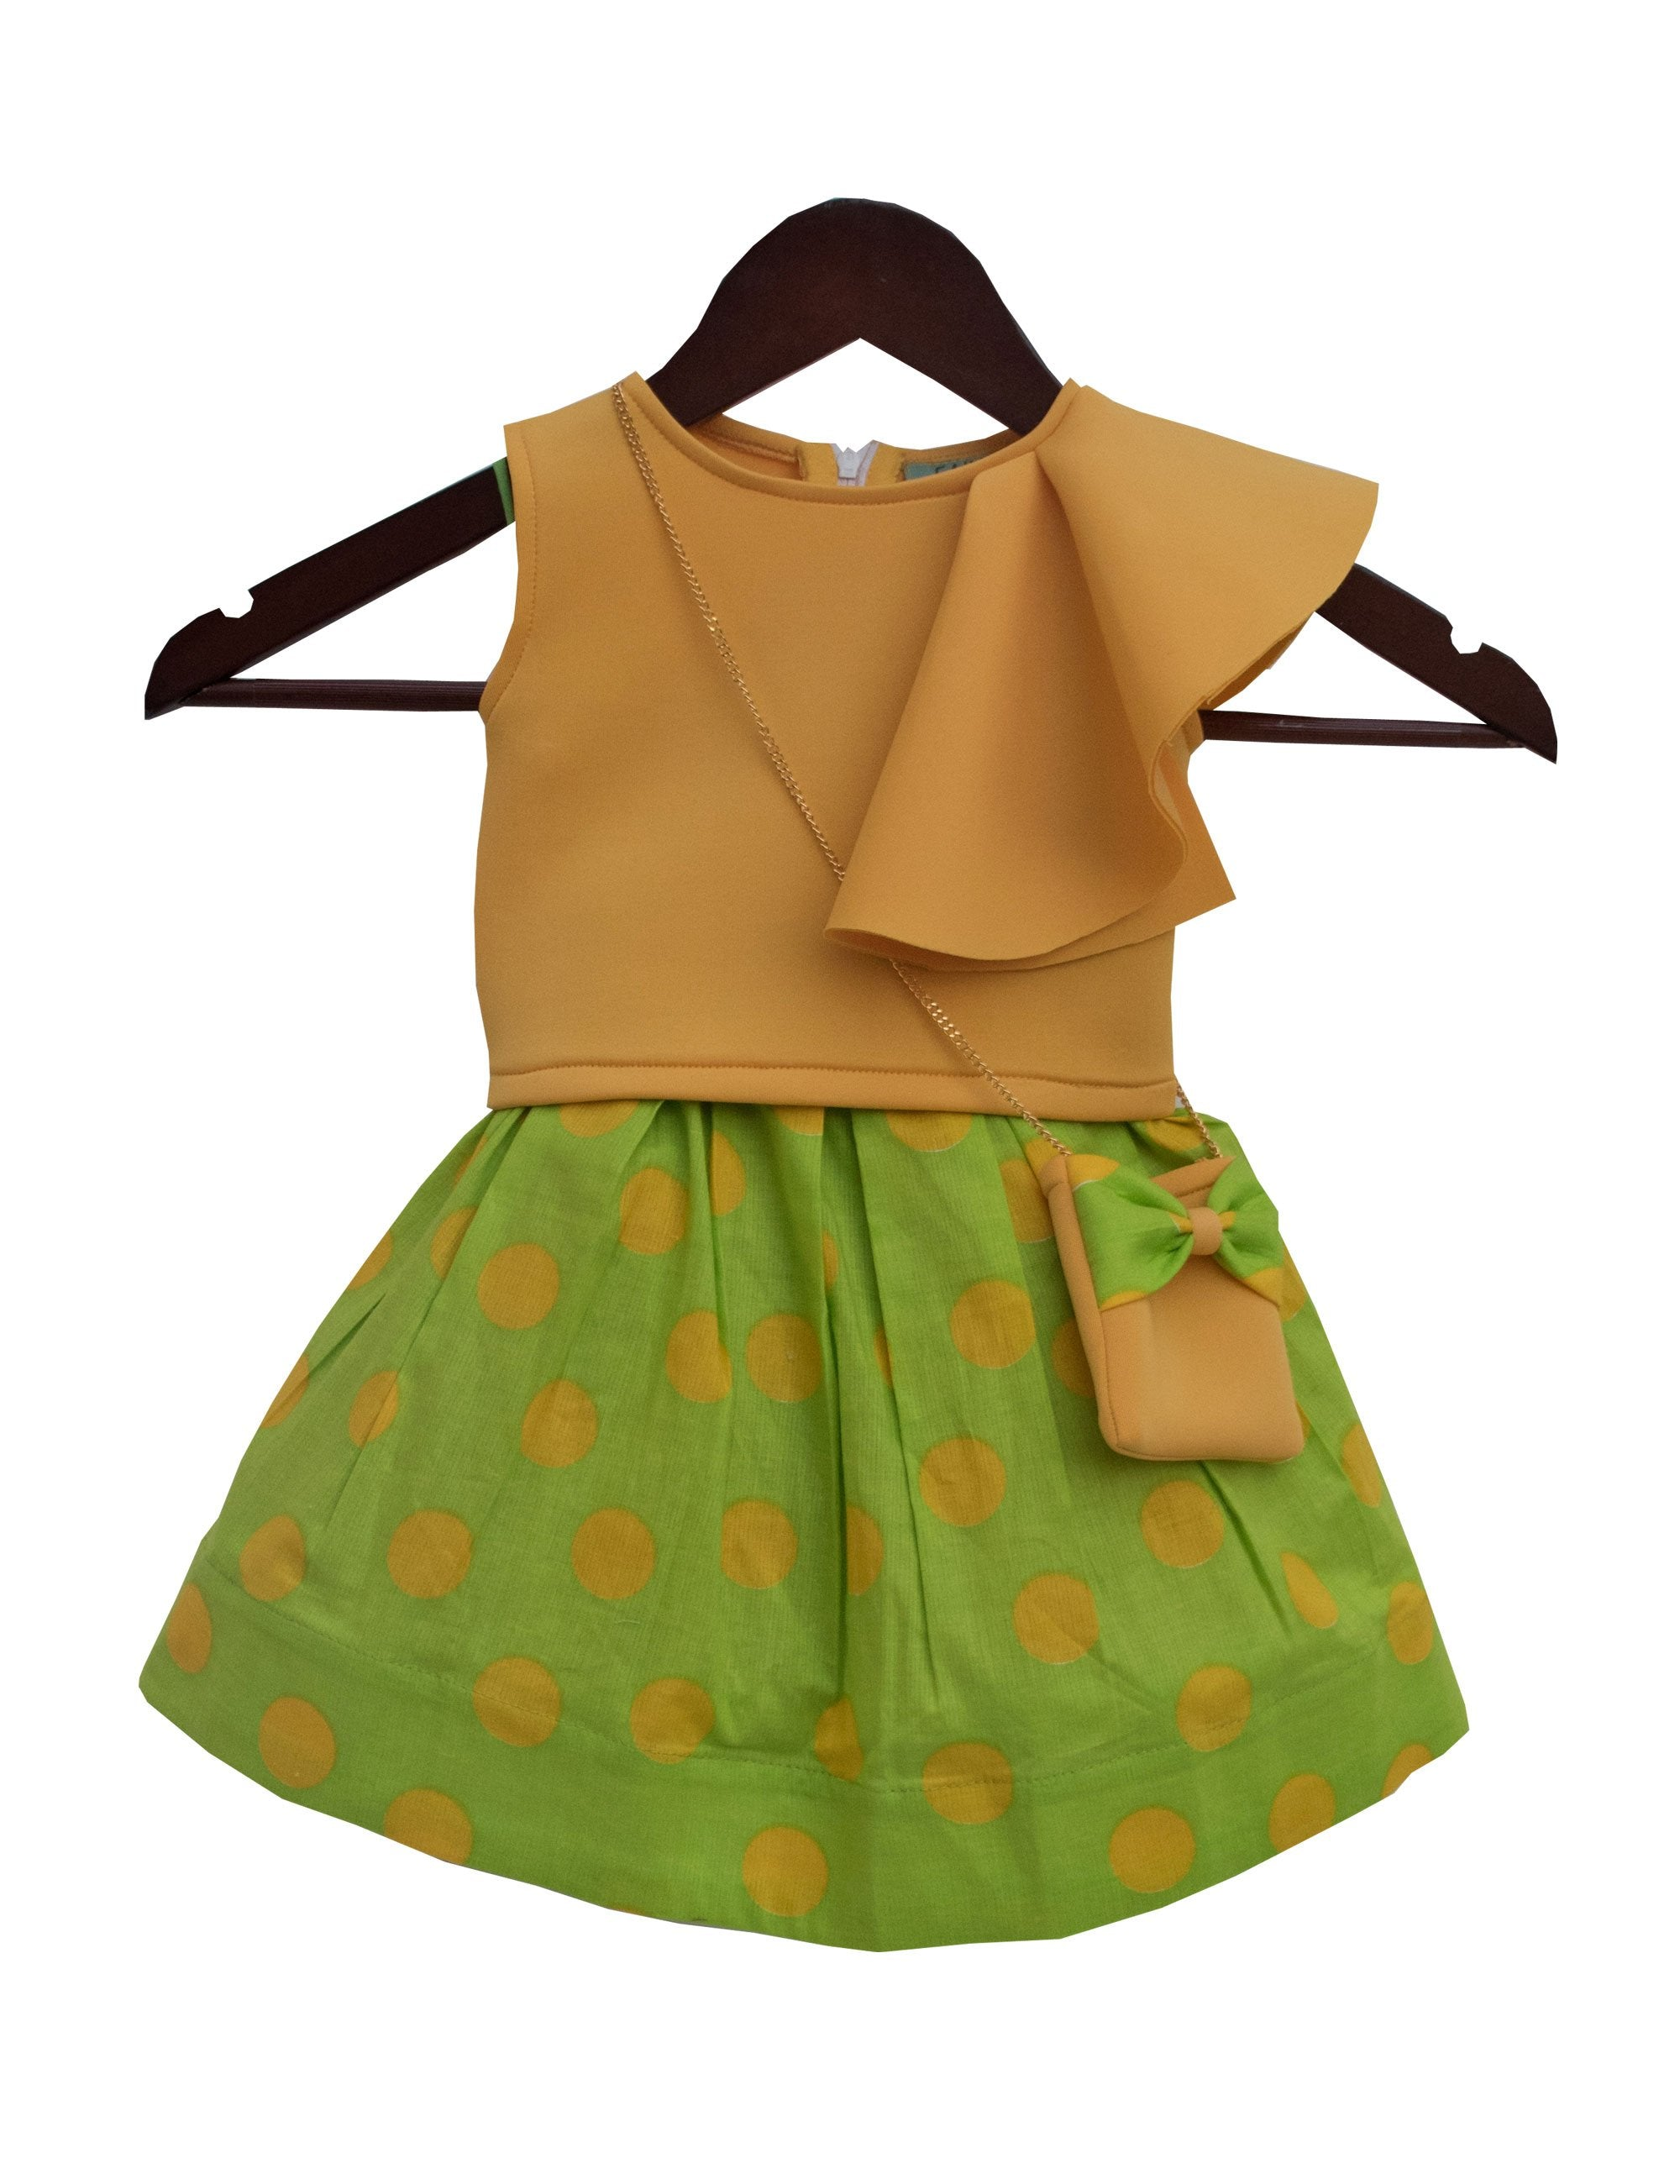 Crop Top with Printed Skirt in Yellow and Green Colour for Girls